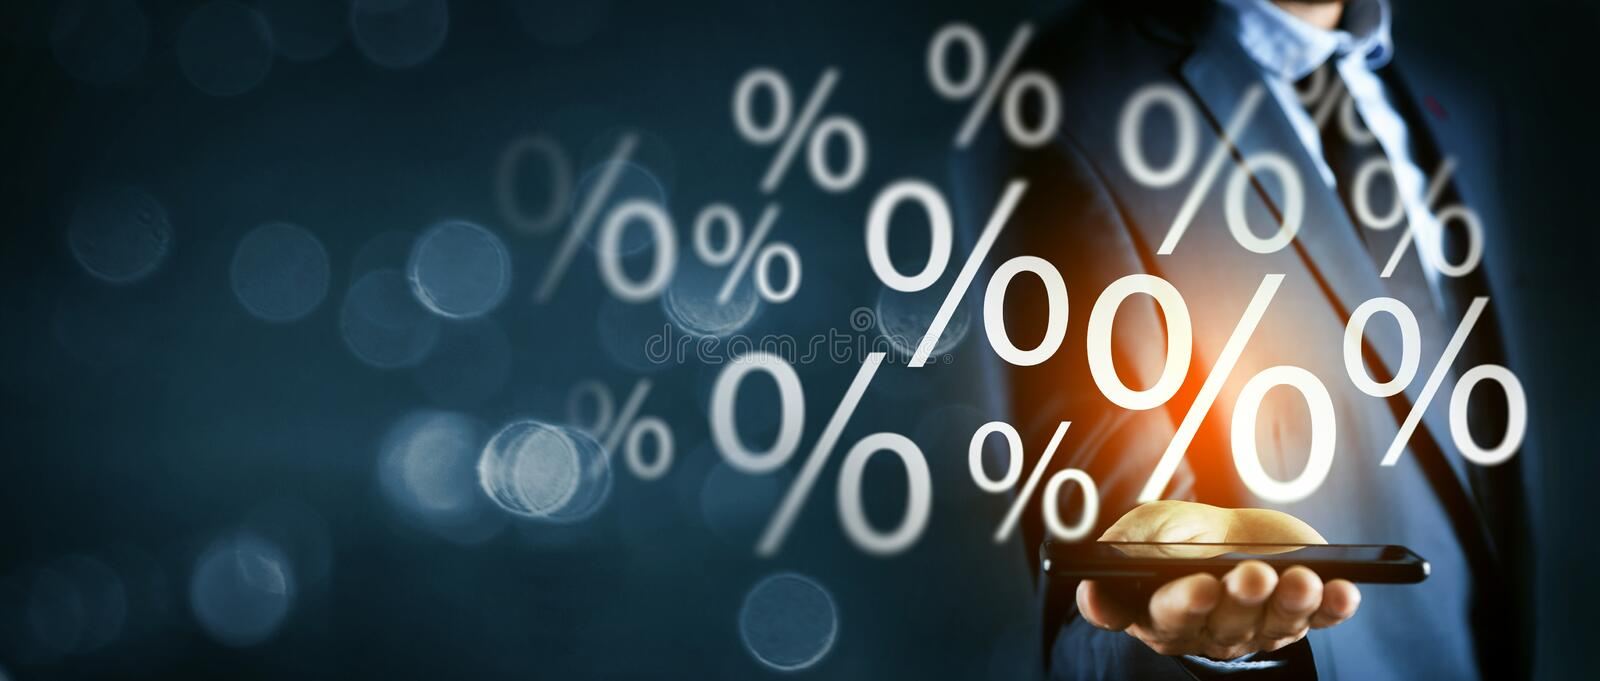 Percent sign percentage icon interest rate royalty free stock images